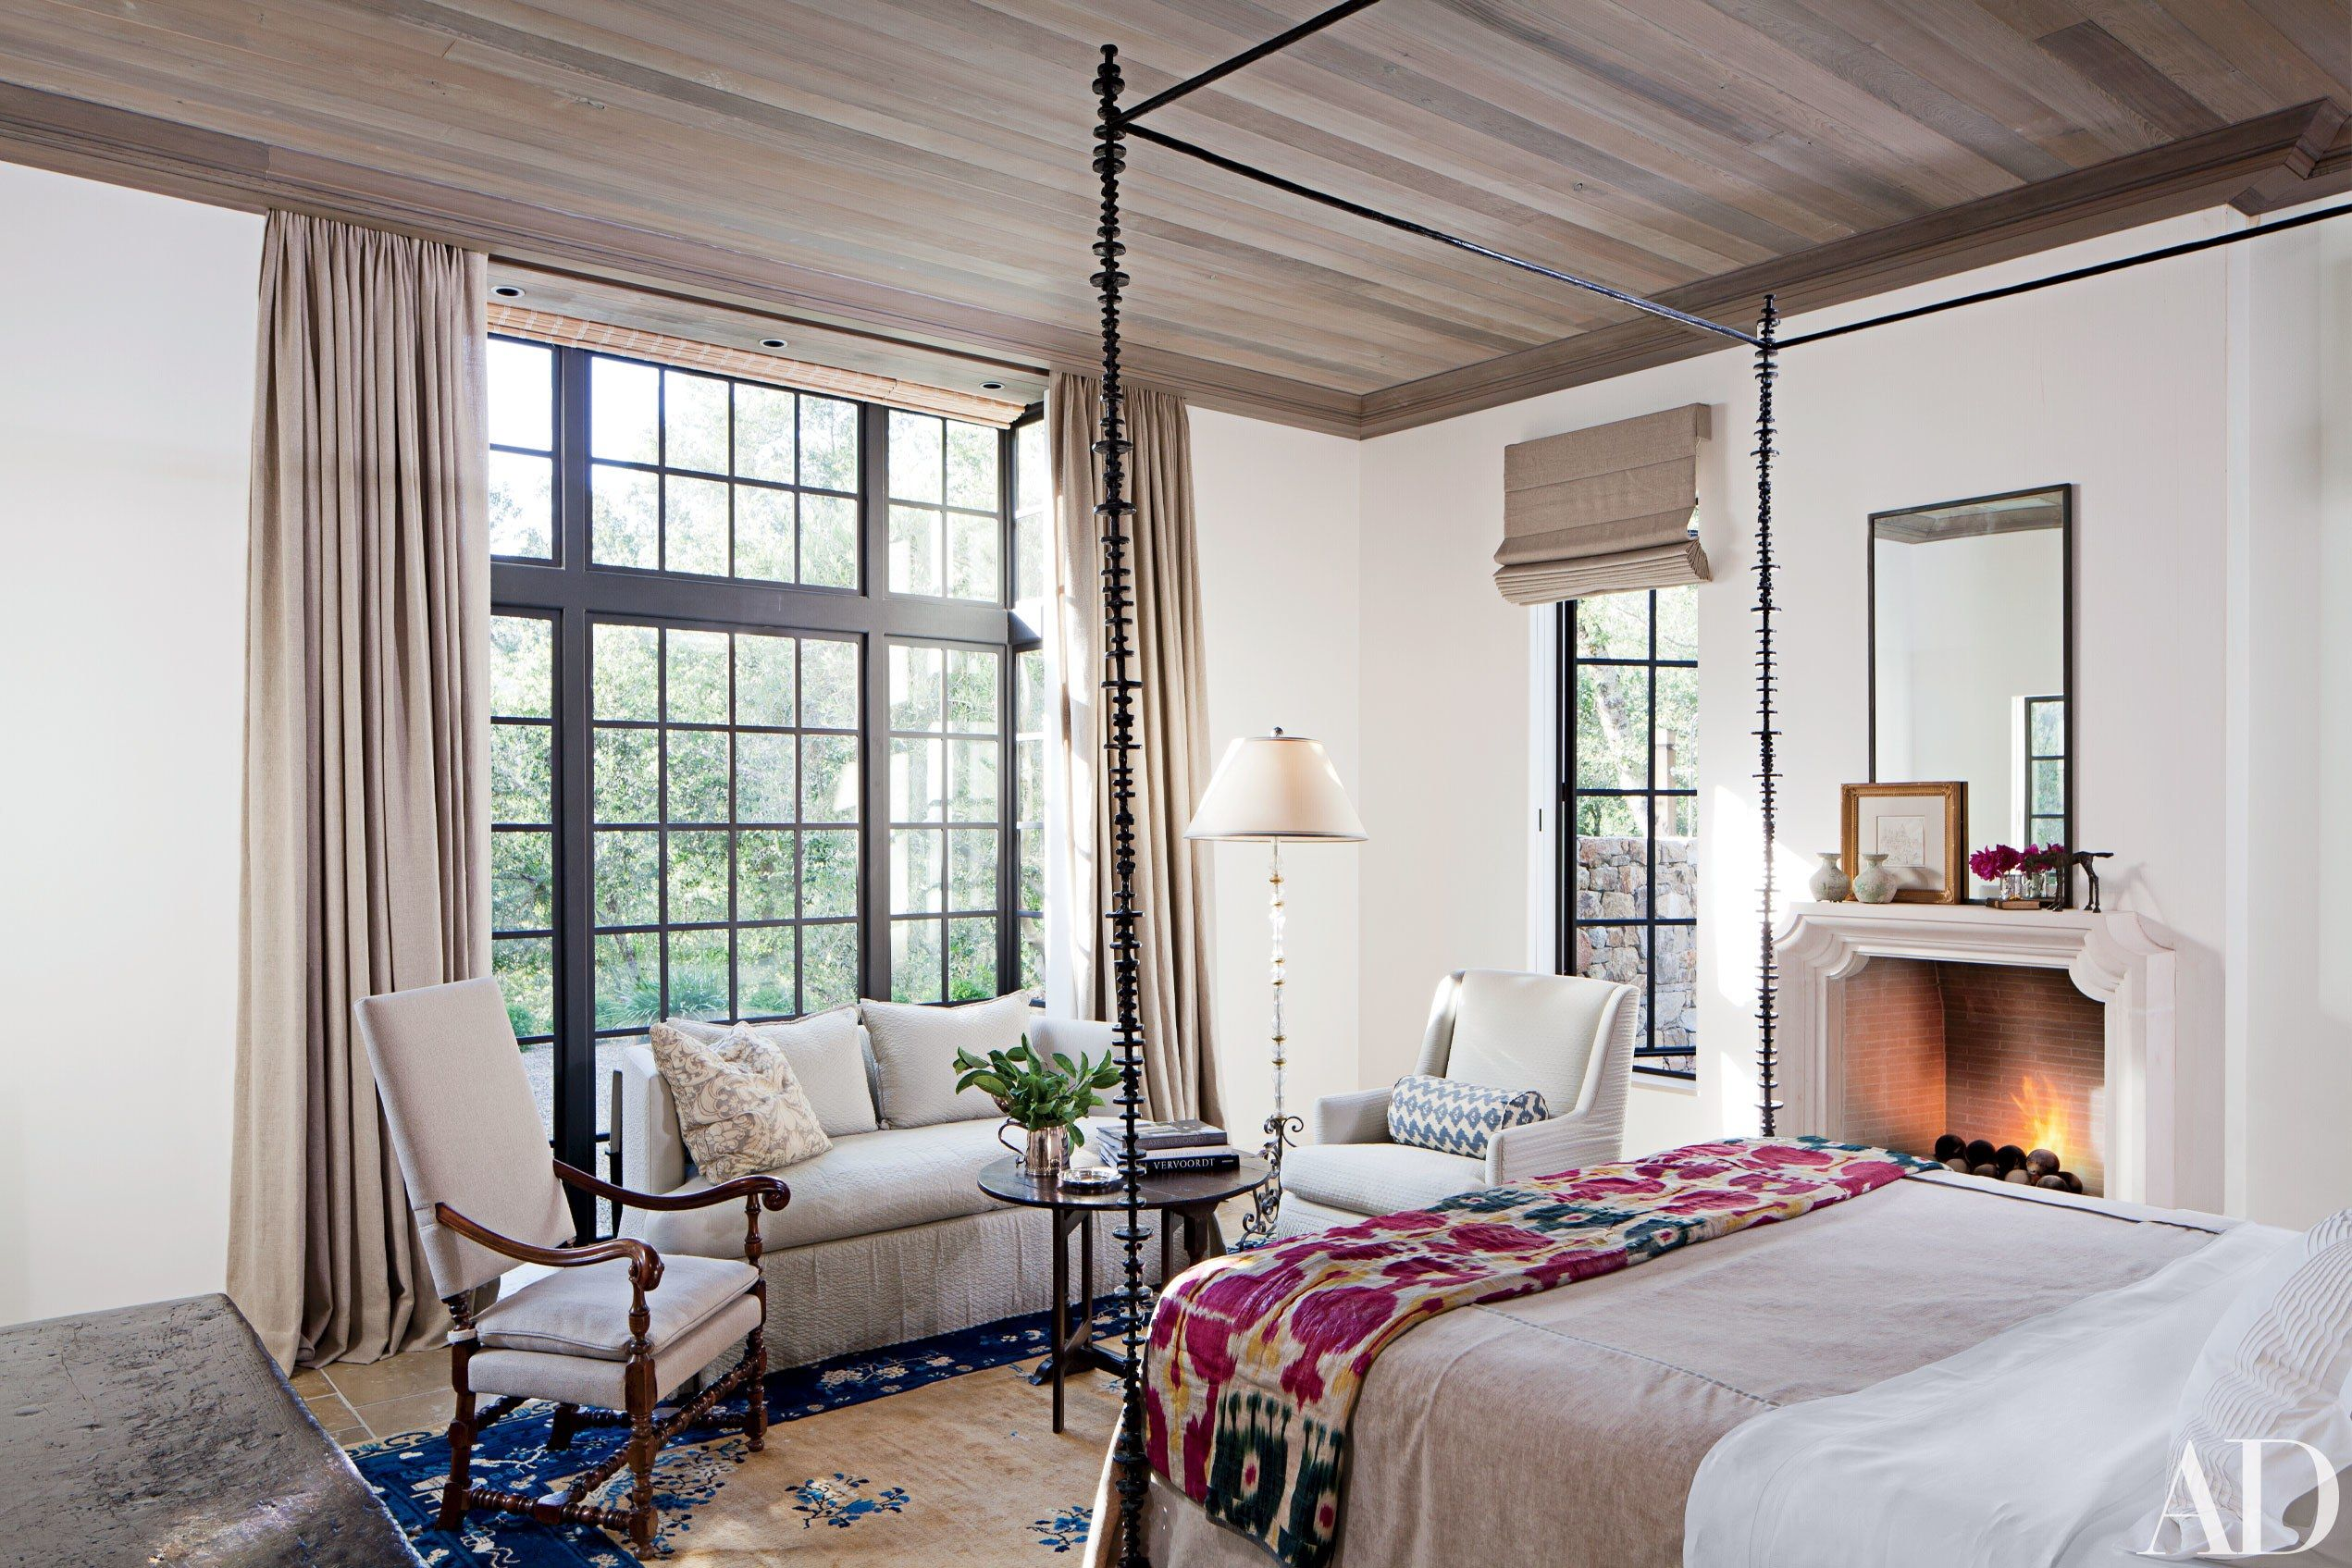 1000 images about bedroom on pinterest fireplaces bedrooms and